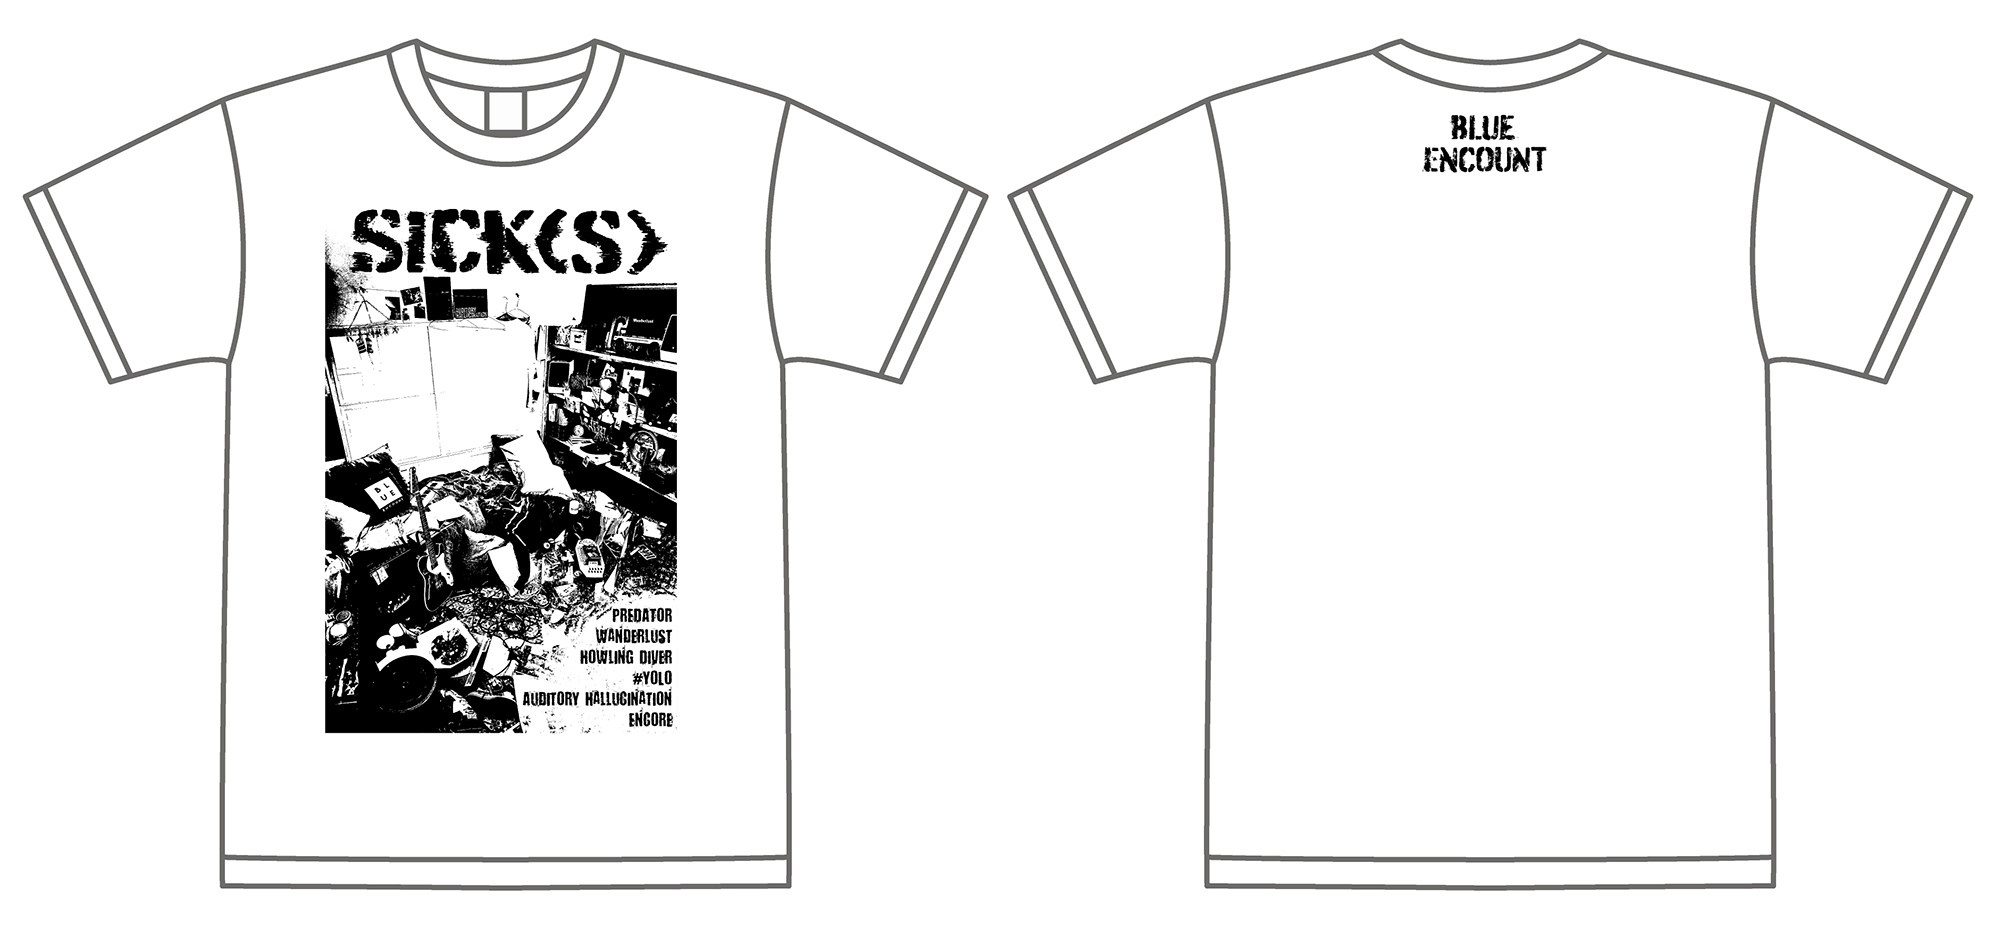 BLUE ENCOUNT「SICK(S)」<完全限定プレミアム「SICK(S)」Tシャツ>